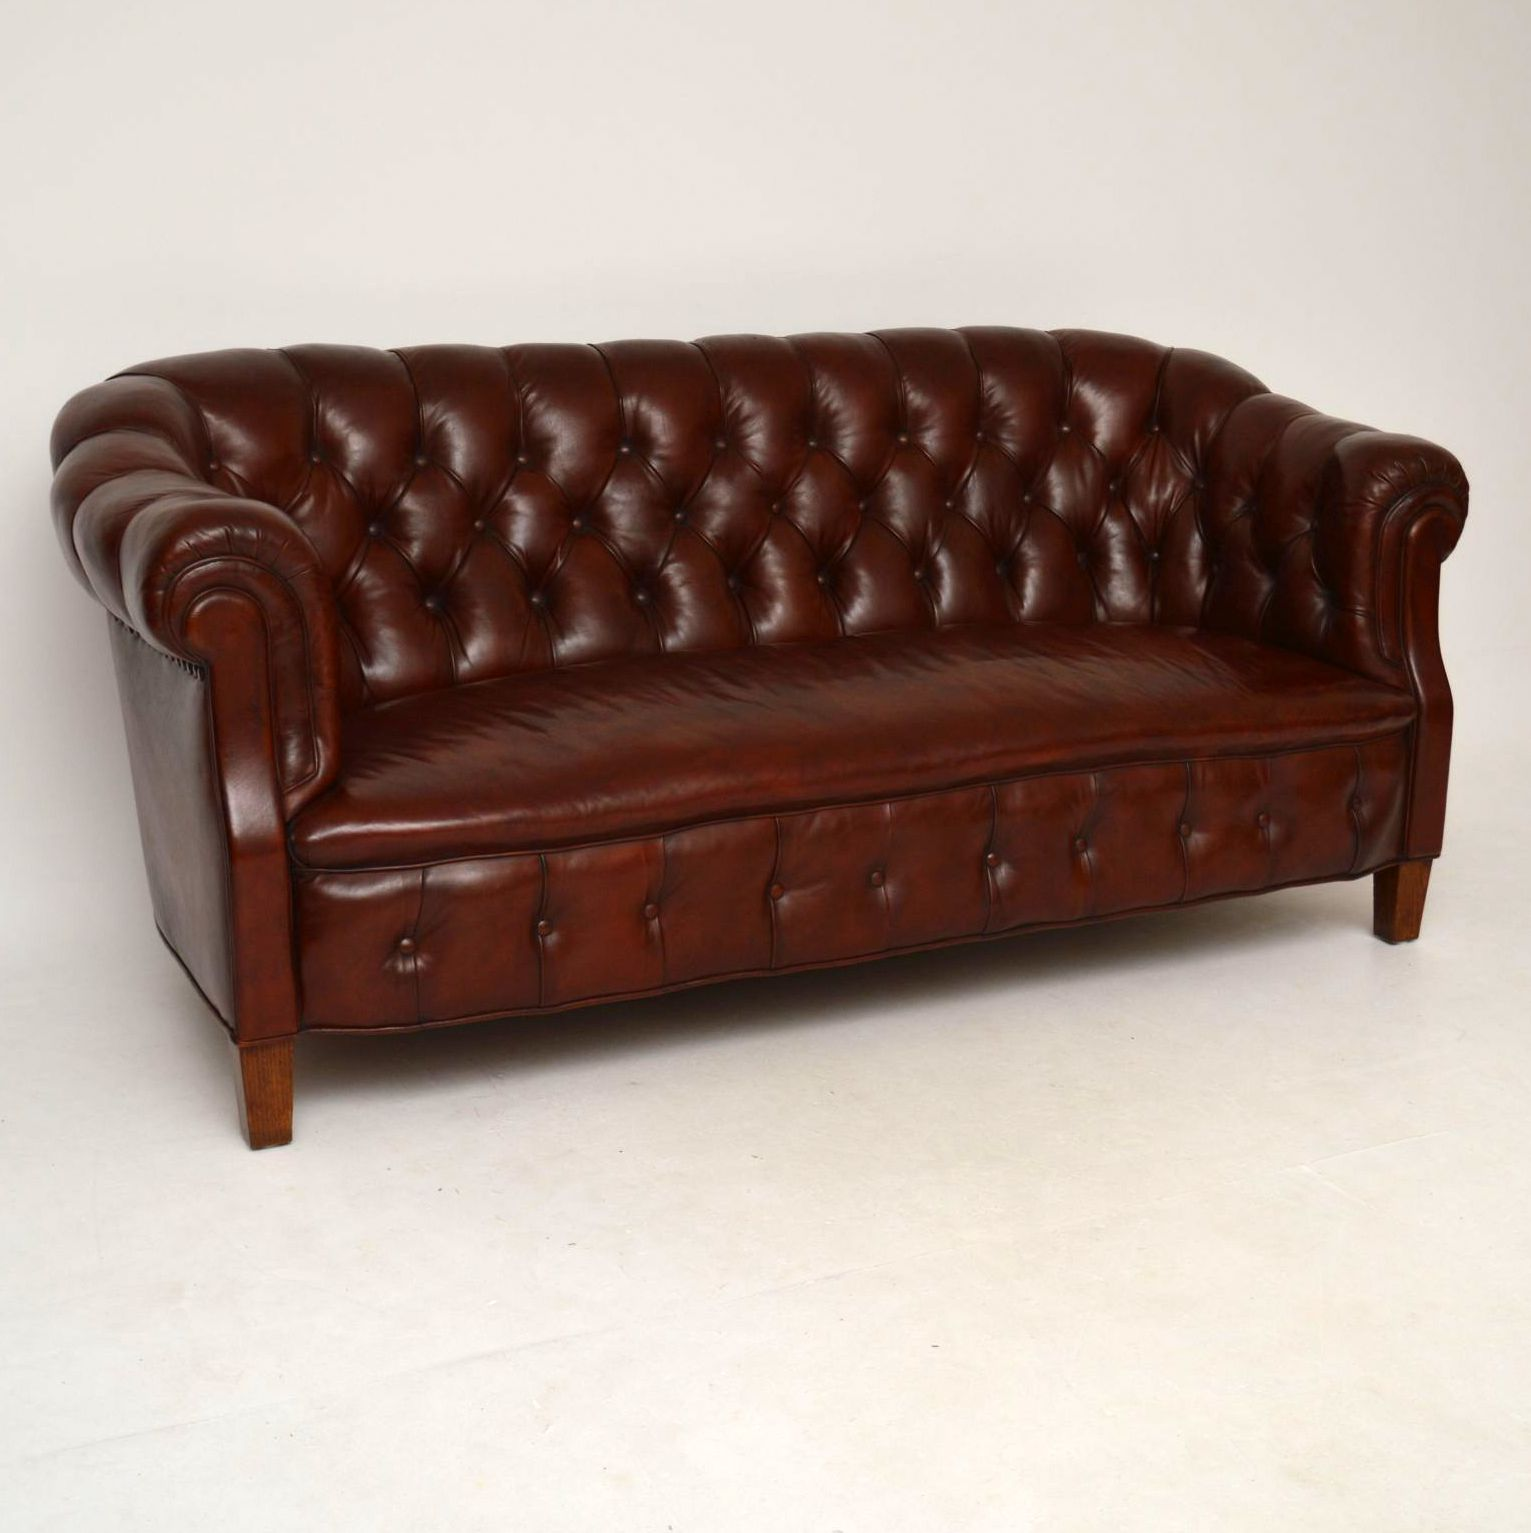 Schwedische Schlafsofas Antikes Swedish Leather Chesterfield Sofa